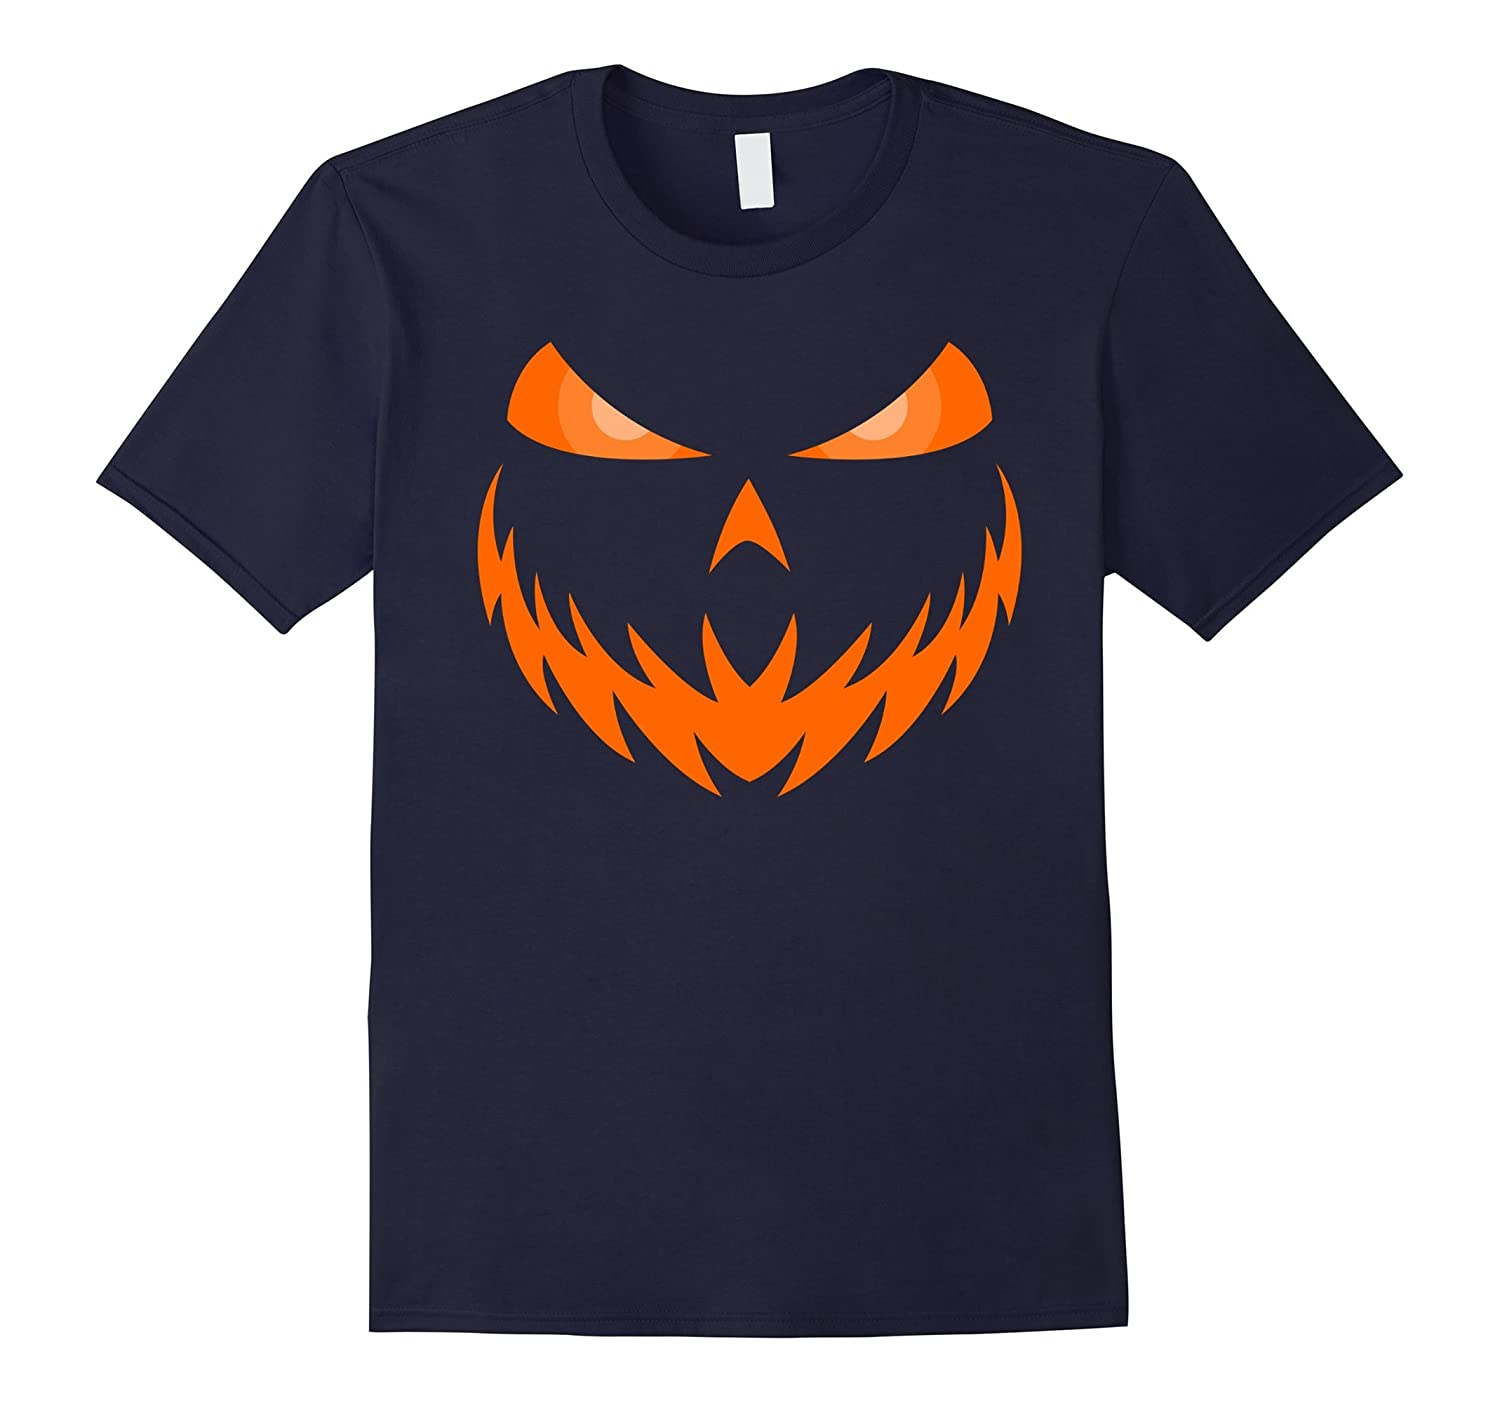 Scary Jack-O-Lantern Face Shirt Halloween Costume Shirts-RT